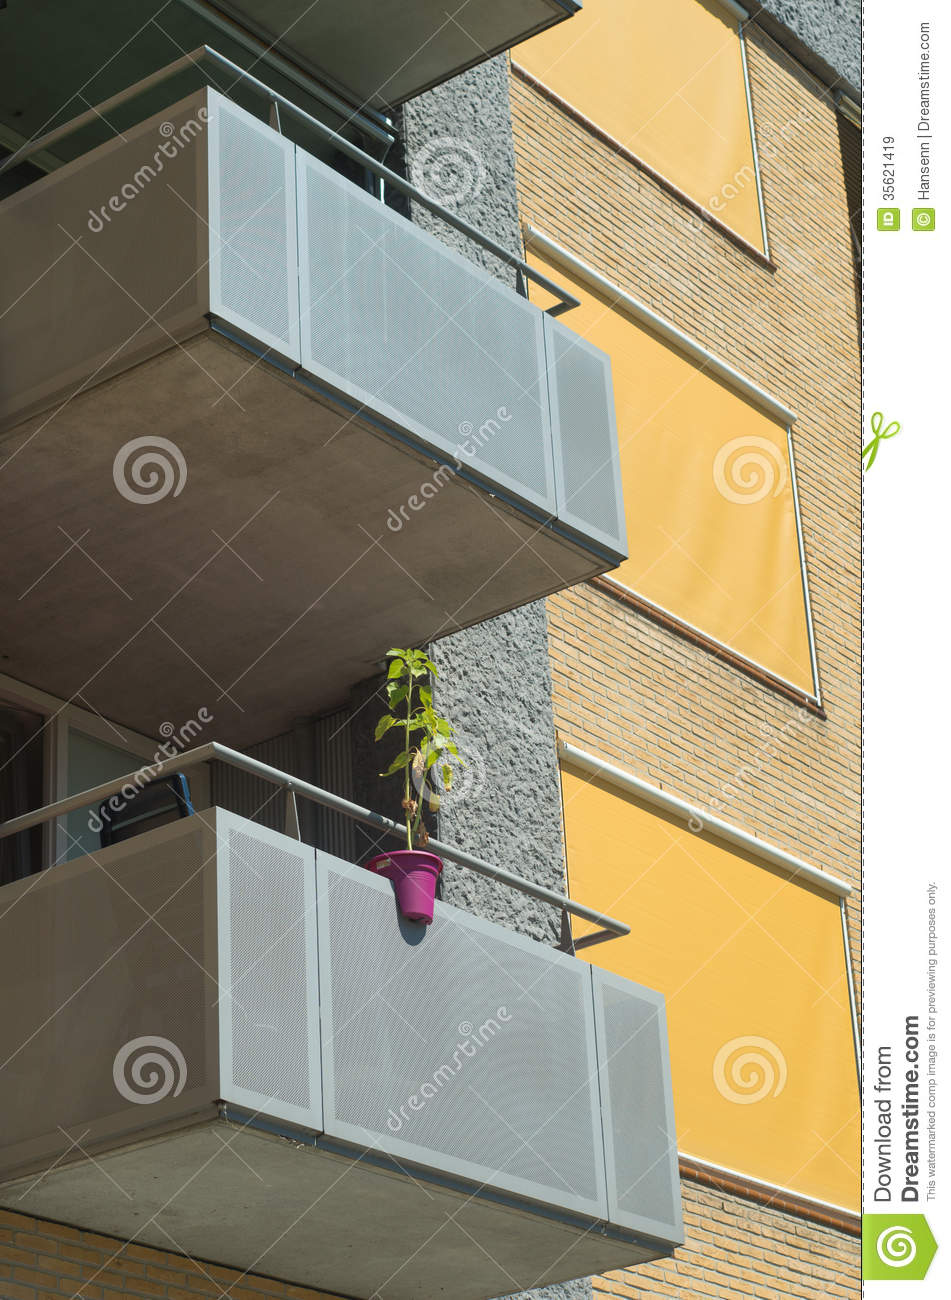 apartment balcony plants Balcony With Plants Stock Image Image Of Apartment Nobody